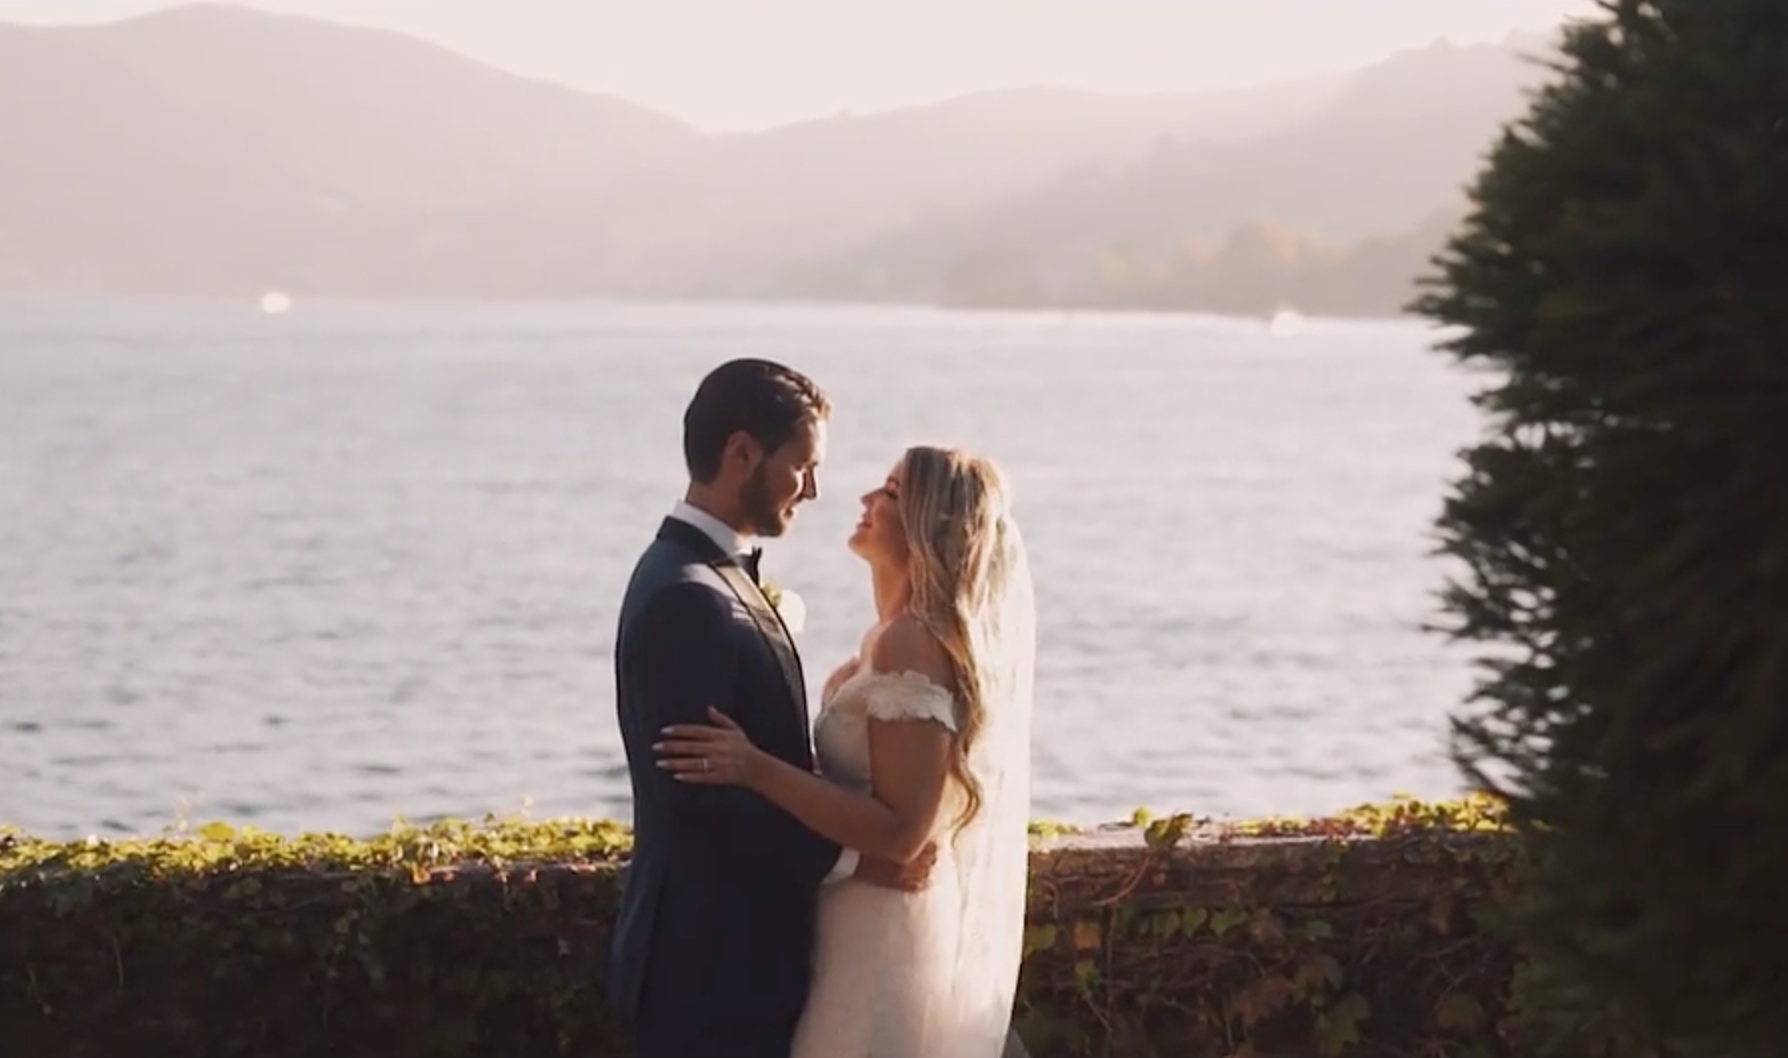 They Were Married At The Same Spot Where John Legend Sang